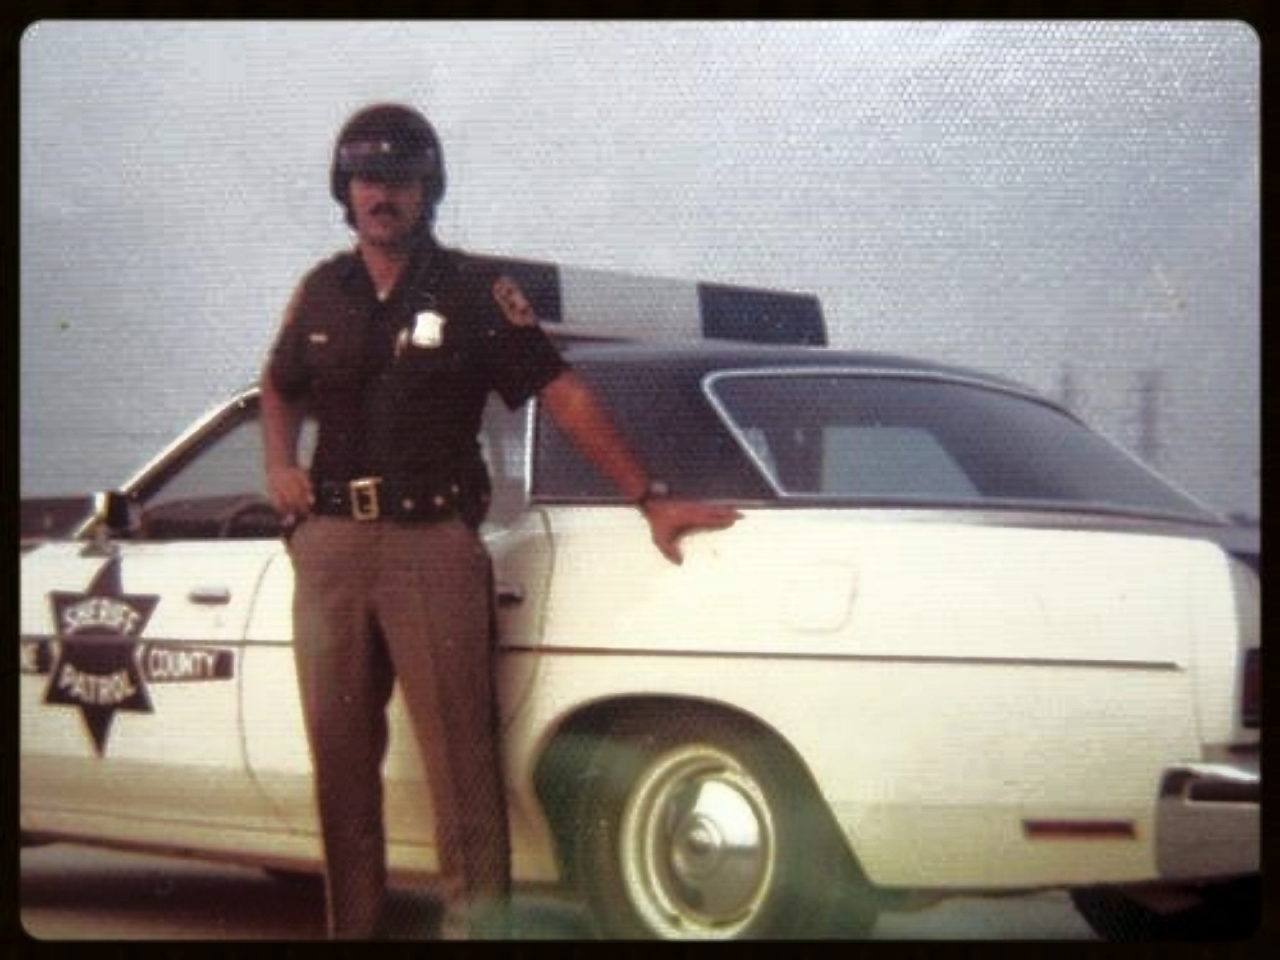 Thursday, July 19, 1973. Assigned to our Patrol and Investigation Division. I loved cruising the county. One Sunday morning as I drove a major highway I got into a chase with a woman and stopped her by shooting out her right tires with my .357 magnum. Her car was full of clothes and she was enraged at her husband so she took it out at me, biting and clawing until I dragged her out of the car as churchgoers stopped and gawked. Wives can be great companions and lots of fun, but from a cop's perspective,  an angry wife  can be something else all together. She can stop your heart. At a traffic accident one rainy night, placing flares in the road, another enraged housewife sped off without her glasses directly into the accident scene. I saw a pair of headlights bracketing me, one on the right and one on the left, barreling right at me. All I could do was leap straight up in the air. Her bumper caught me in both calves and I could hear her shrill screams as I reverse-somersaulted over her hood, windshield, roof, and trunk. I bounced off the pavement, saw a flash of light; then everything went black.